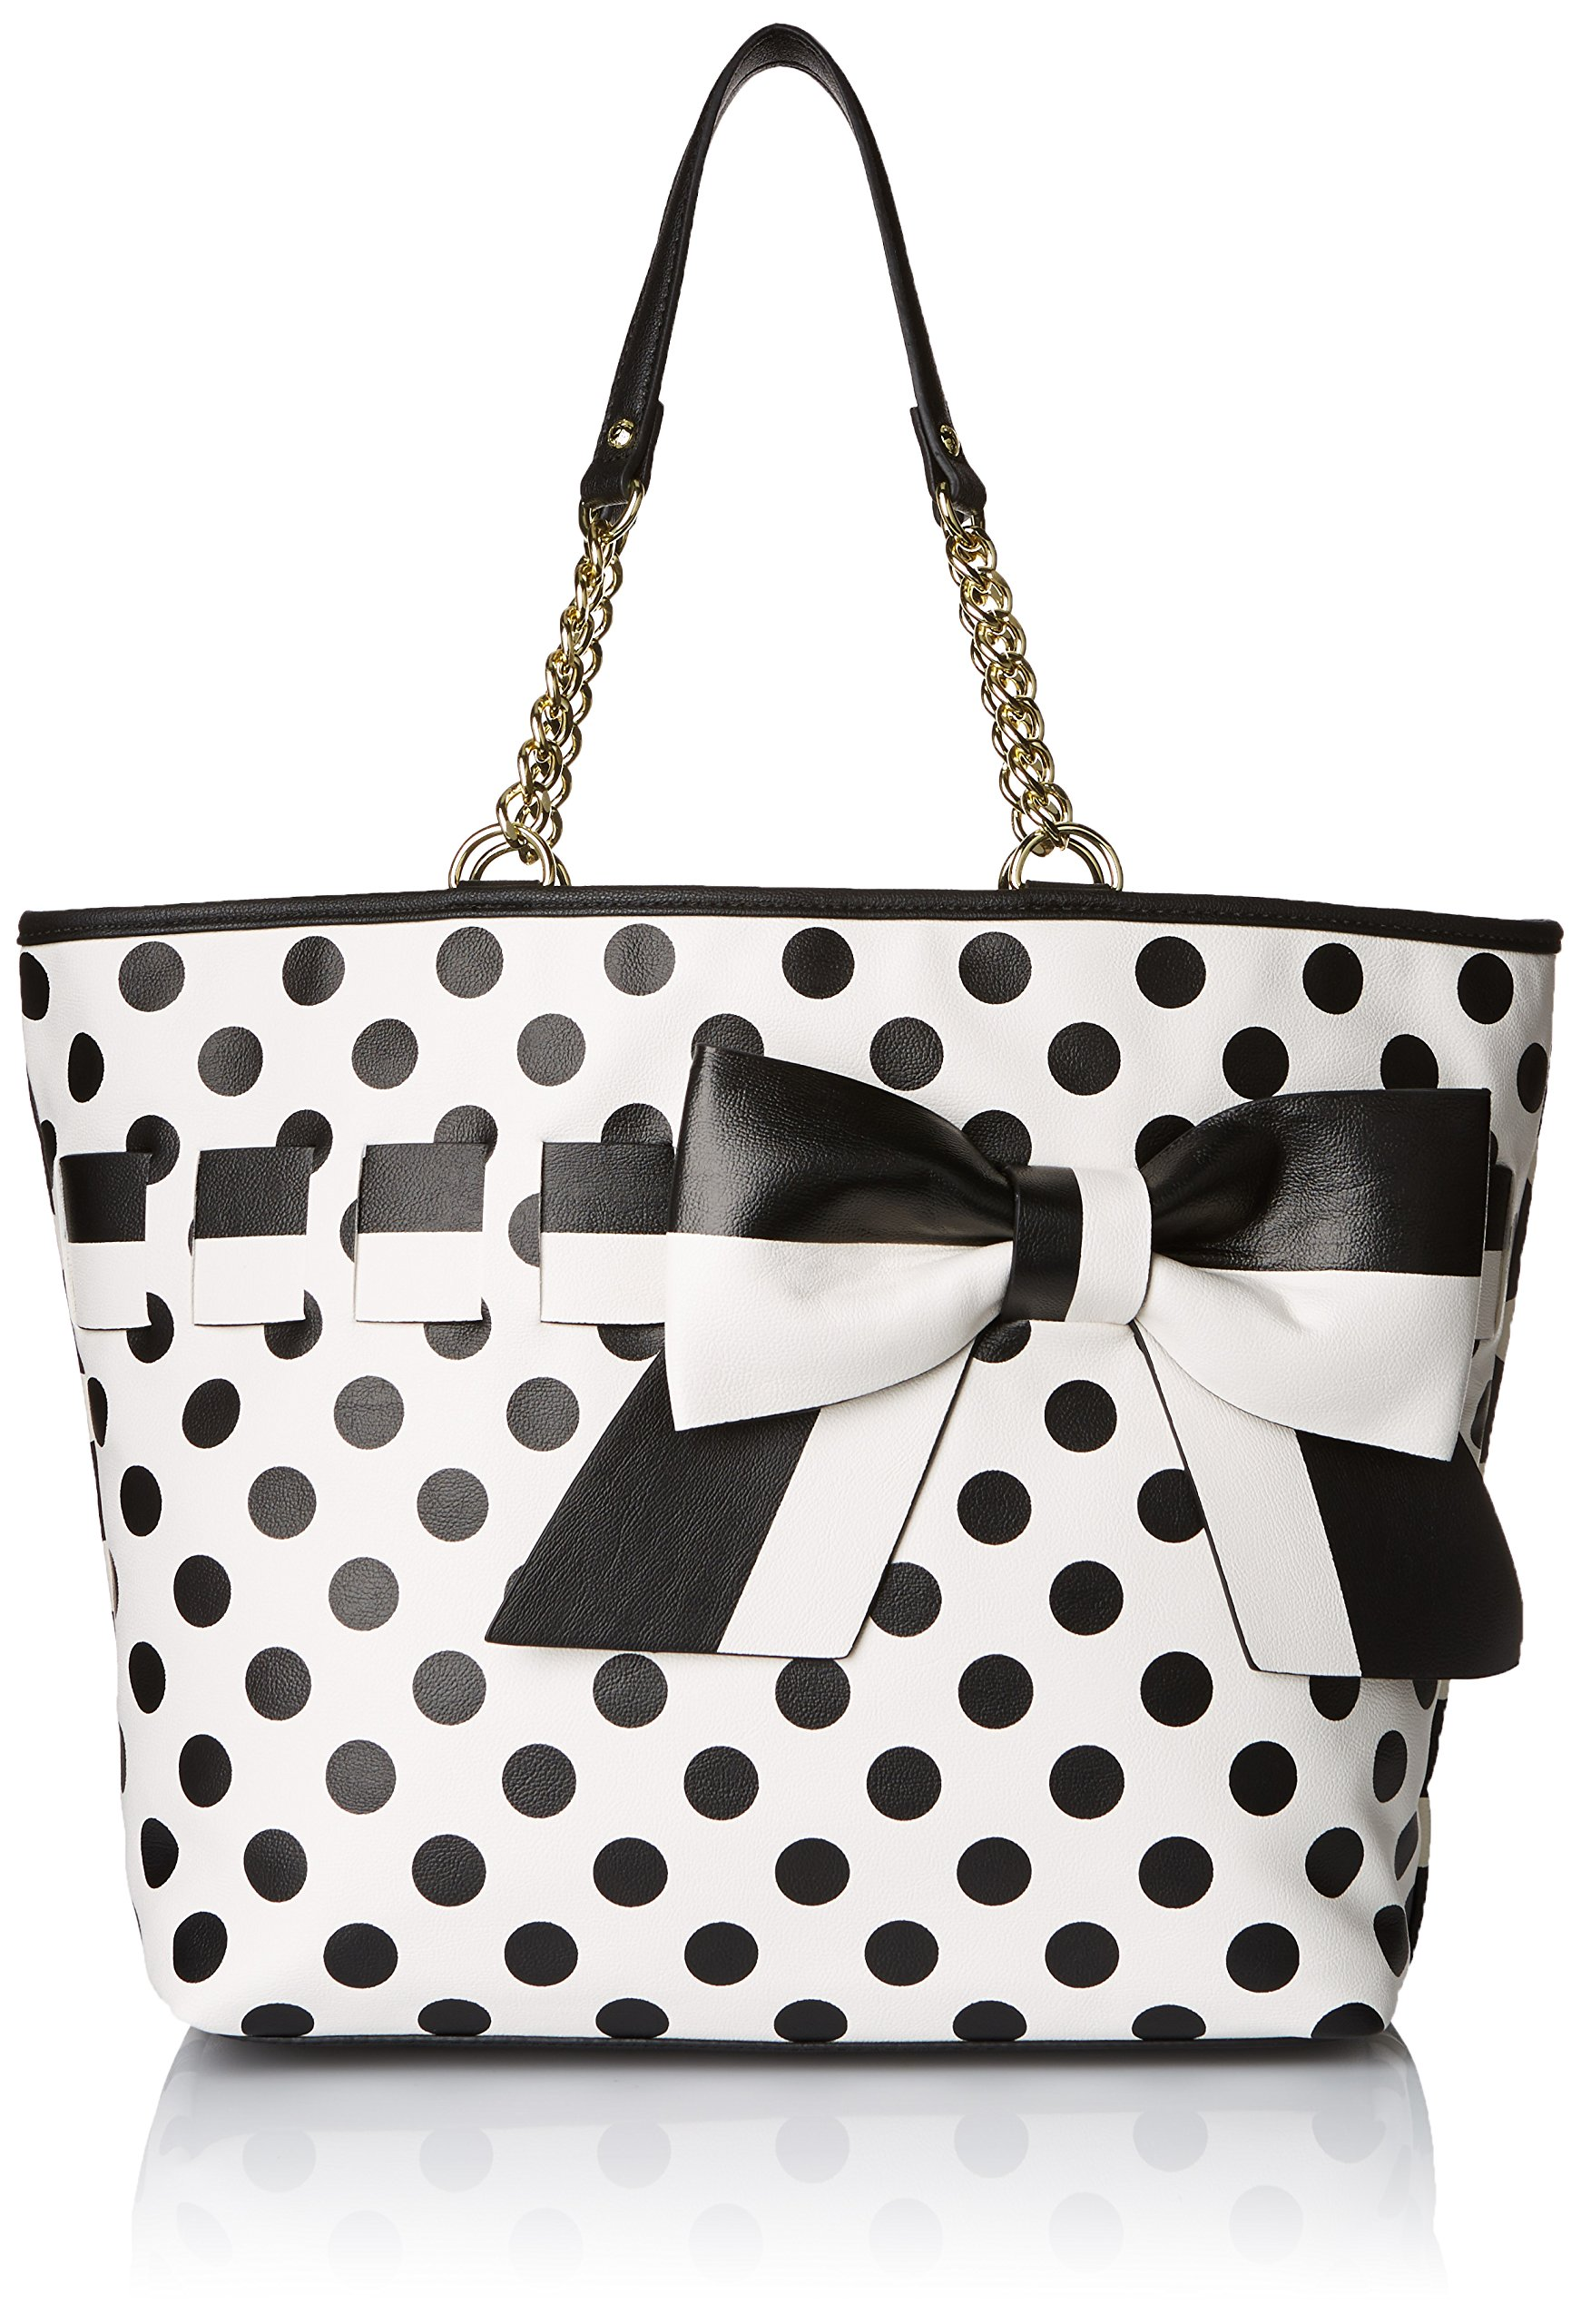 Betsey Johnson Gift Me Baby Tote Shoulder Bag, Cream, One Size